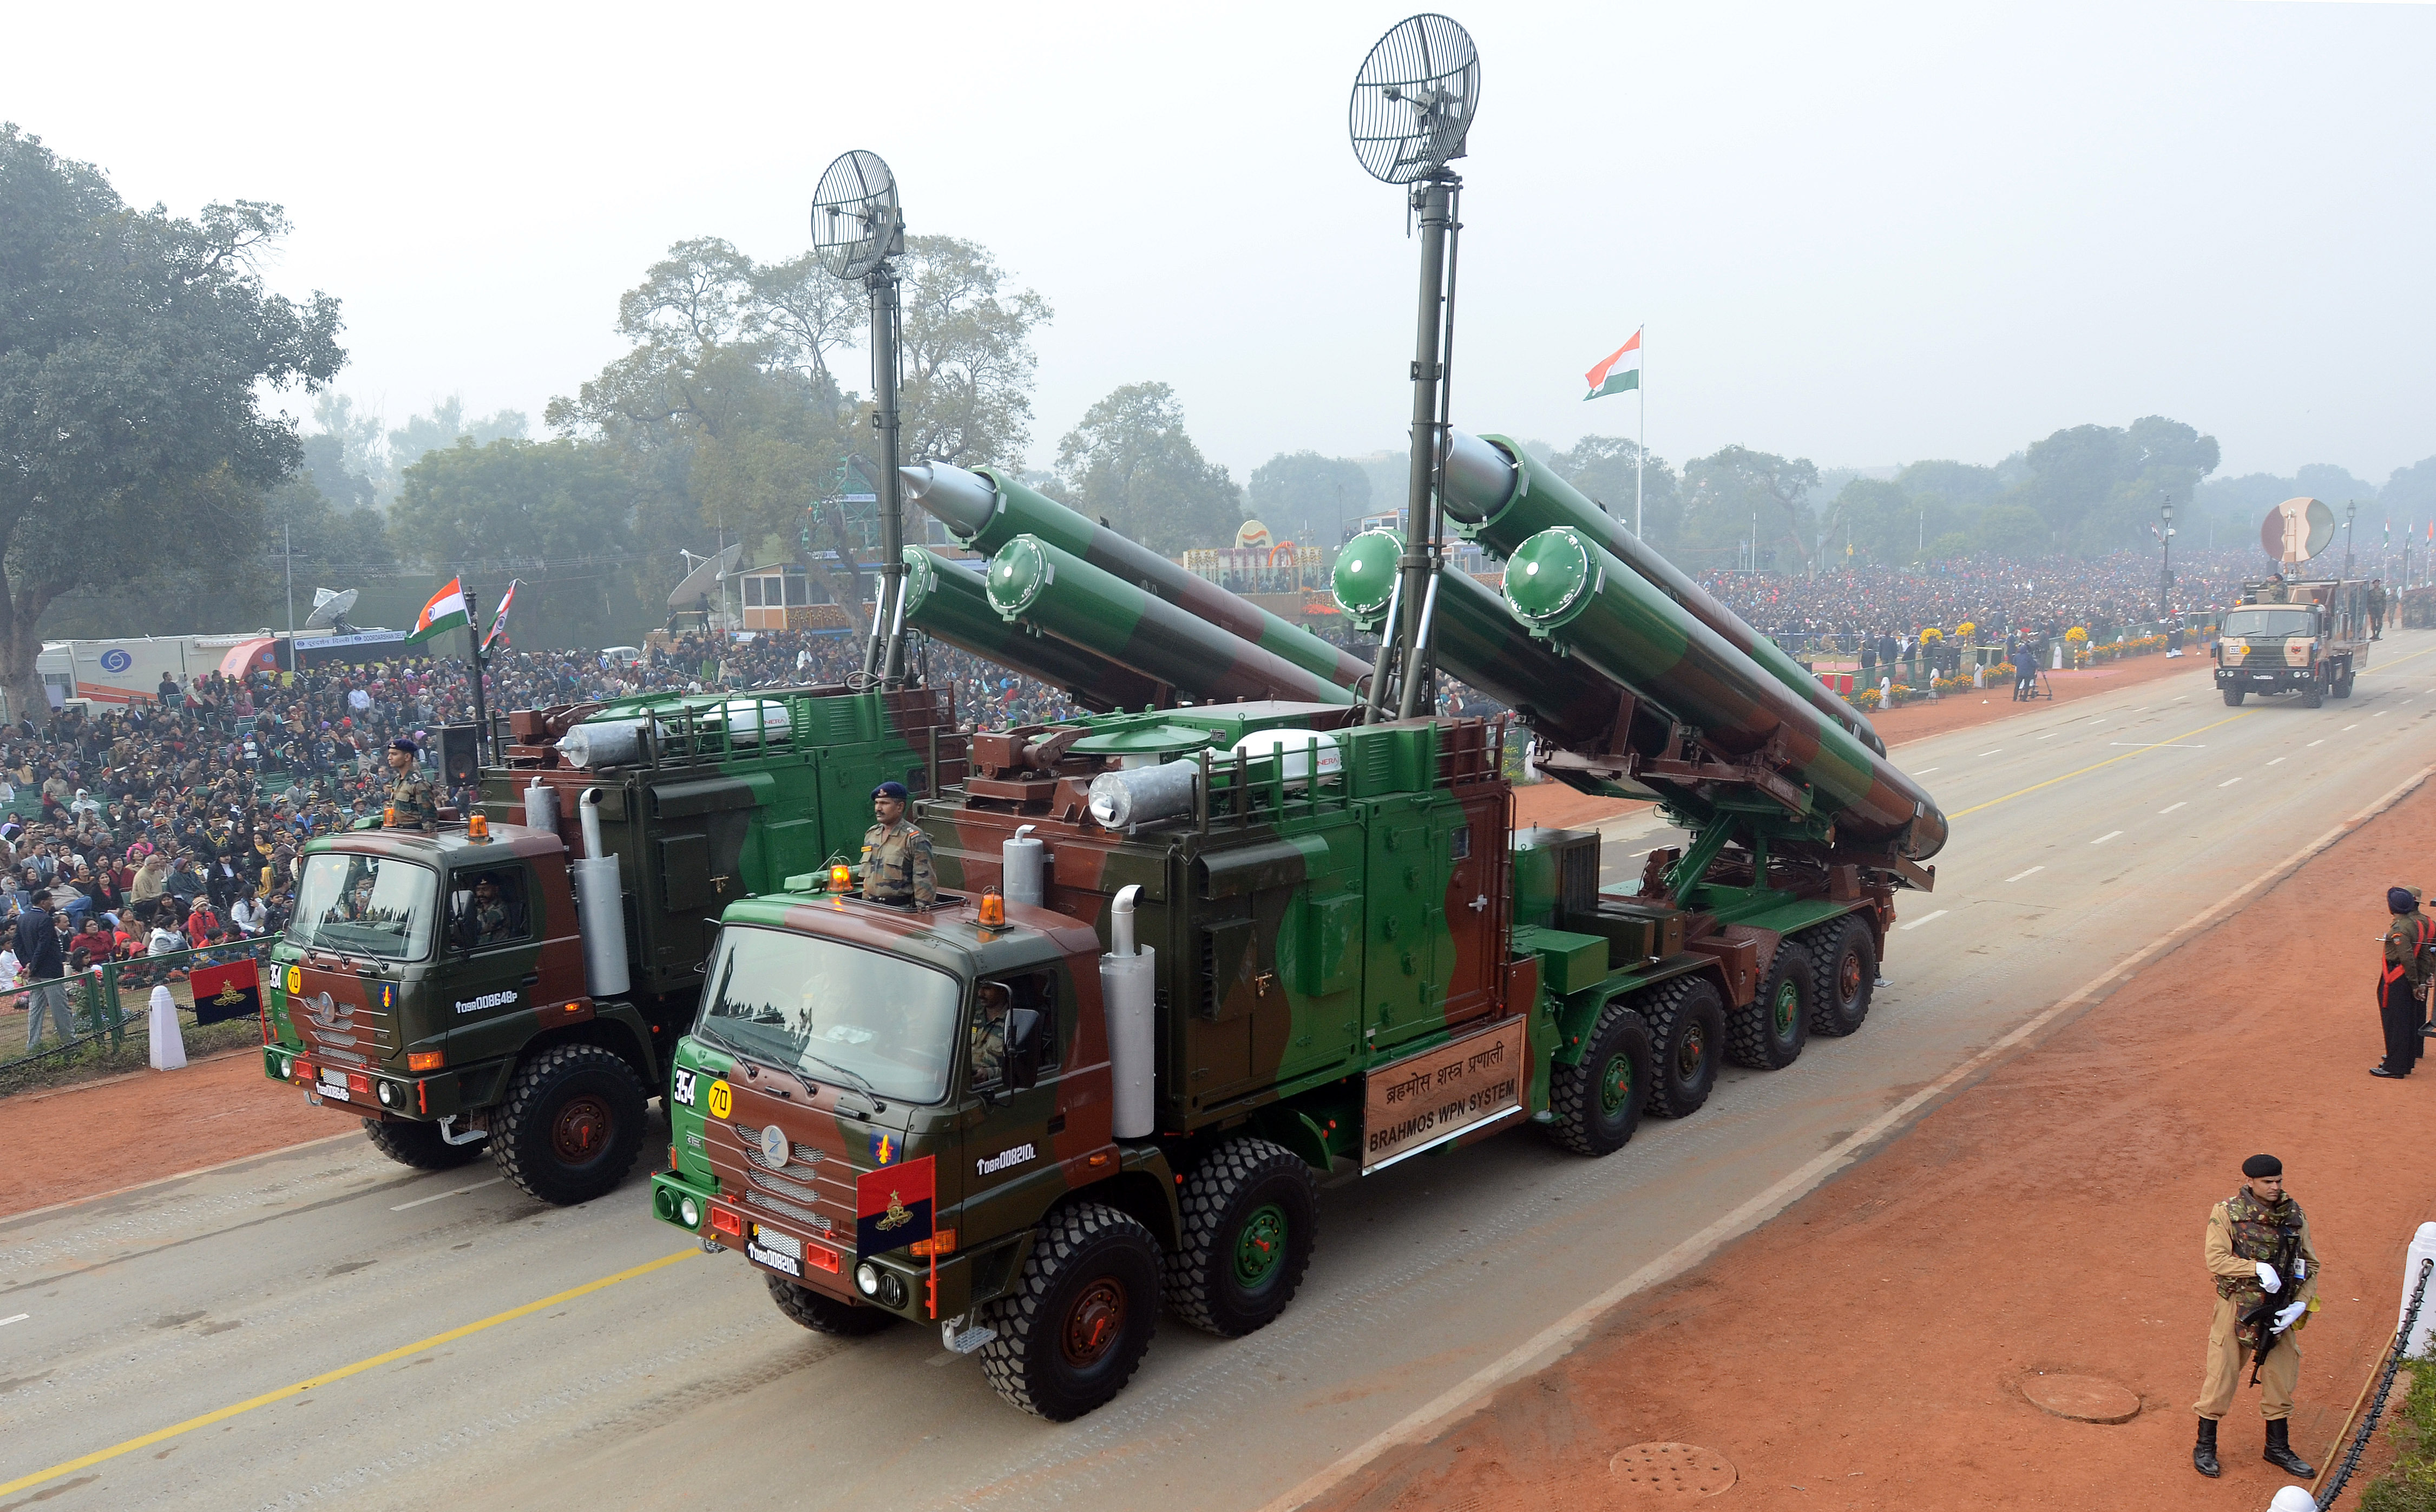 BrahMos supersonic cruise missiles during the Republic Day parade in New Delhi, 2014. Source: Zuma/Global Look Press